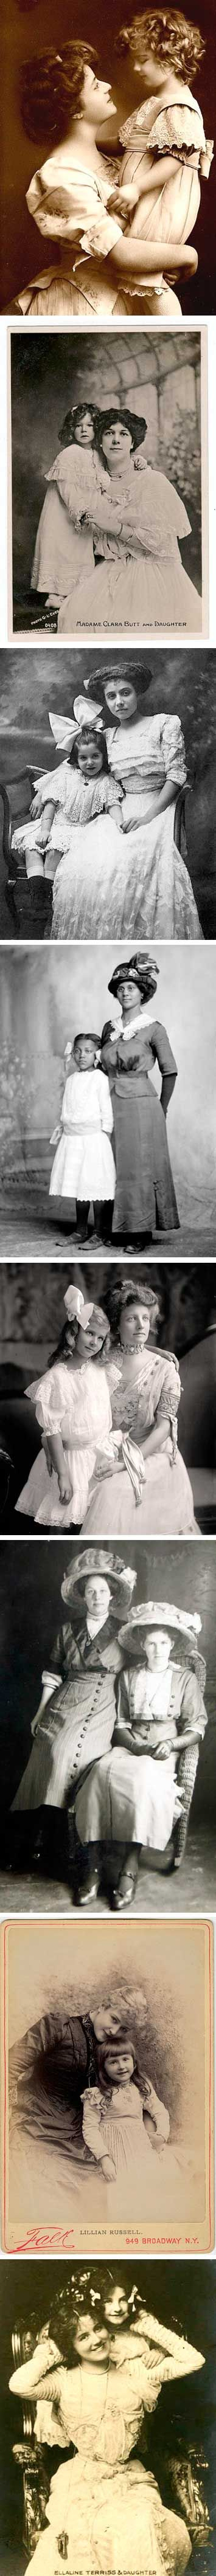 Mother's Day - vintage mother and child portraits - Victorian Edwardian early 20th century